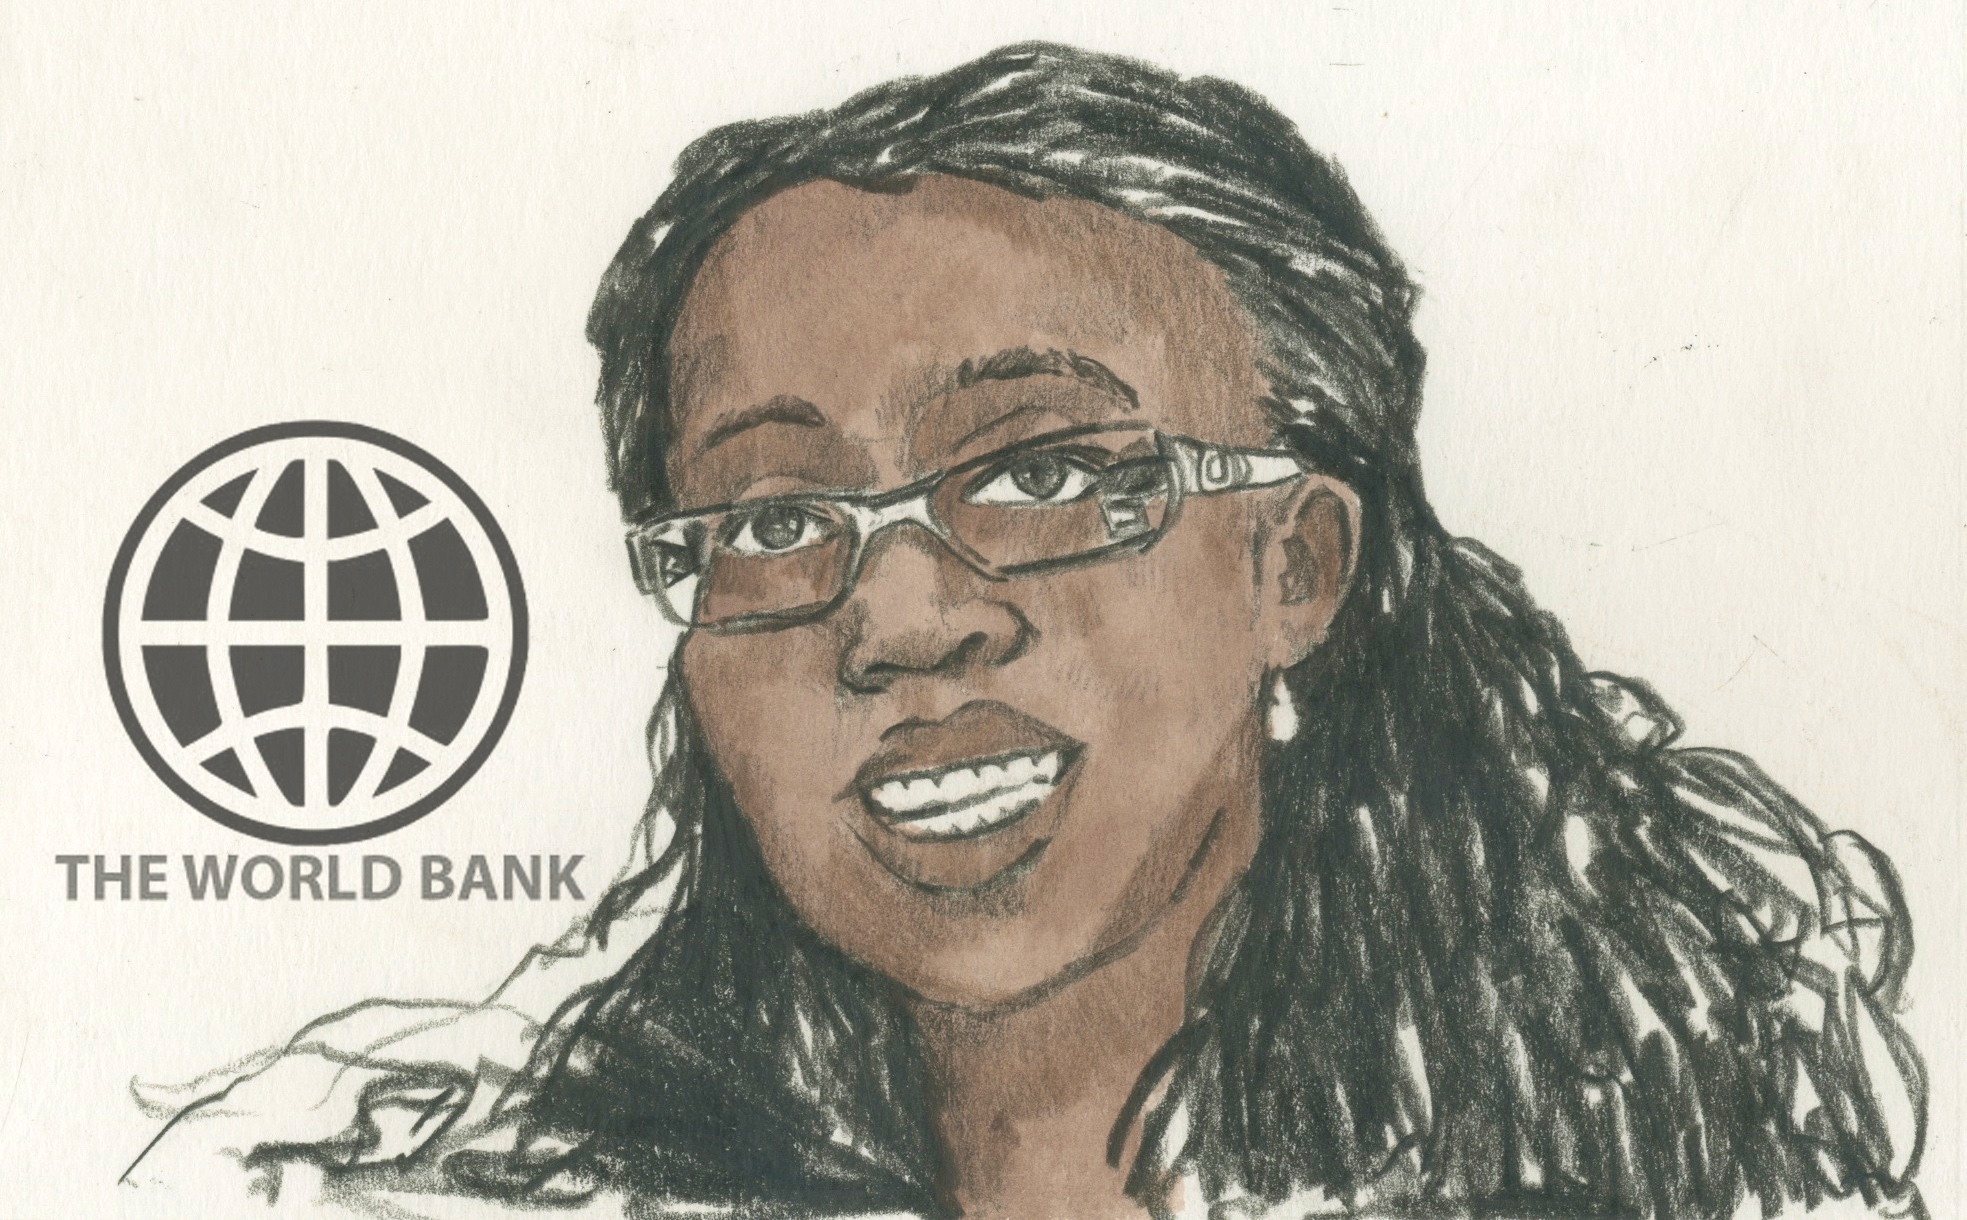 20/09/15 Vera Songwe is the World Bank Country Director for Senegal, Cape Verde, The Gambia, Guinea Bissau, and Mauritania, based in Dakar, Senegal. A Cameroonian national, Songwe joined the bank in 1998 and is considered a rising star.